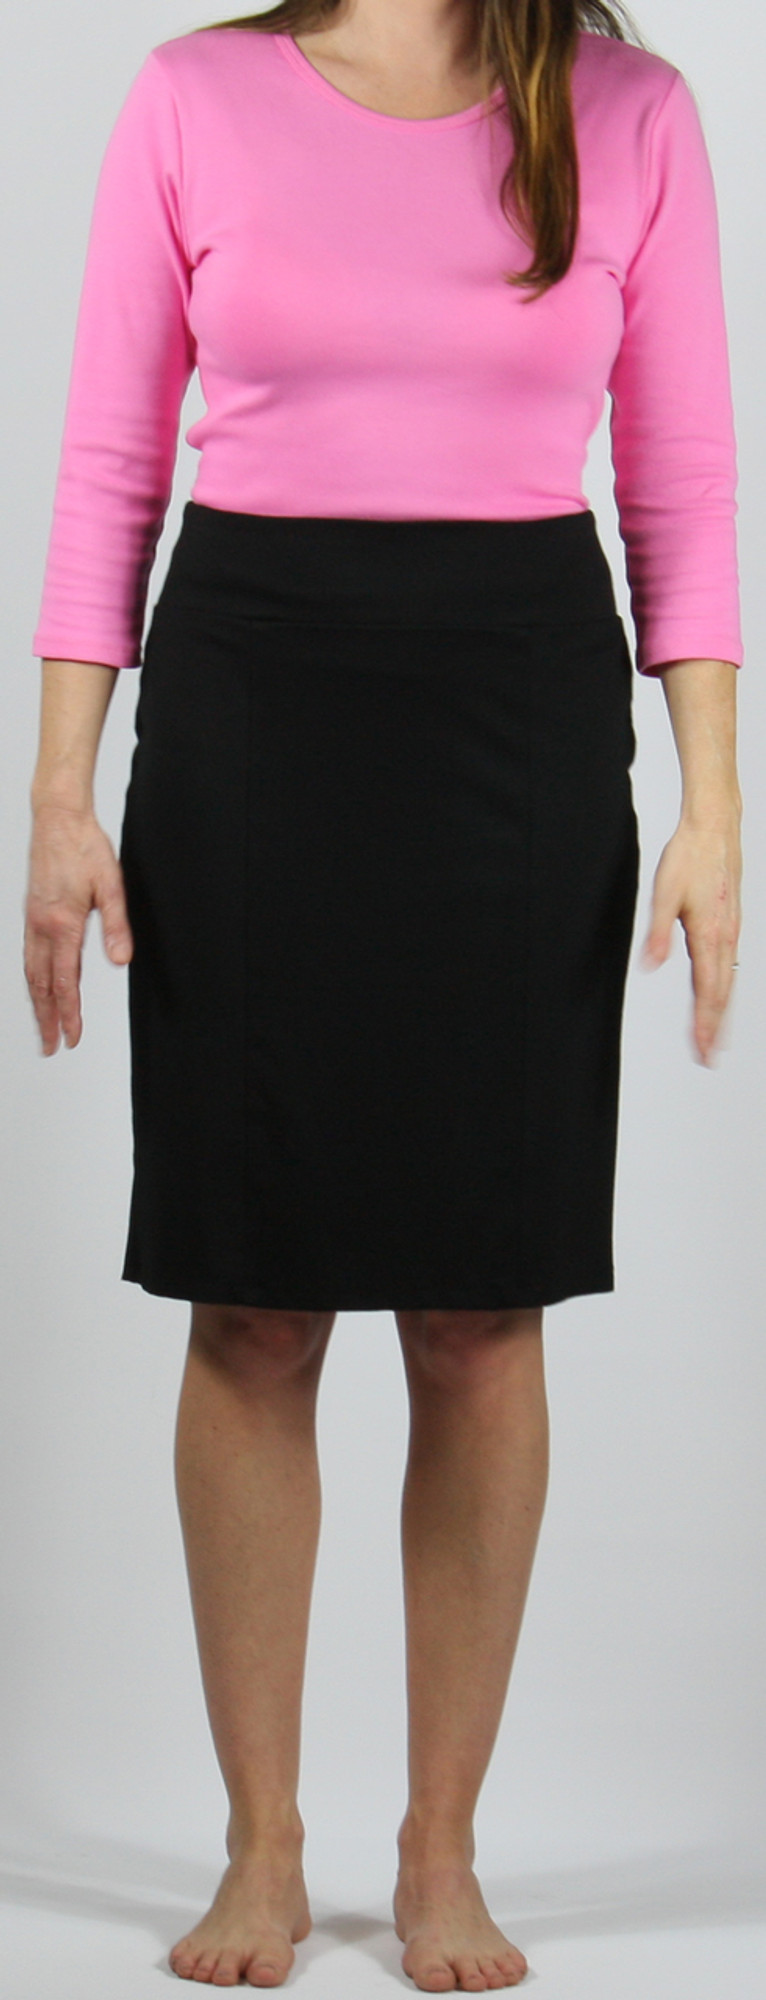 "Ponte knit straight 6-panel skirt, model is 5'8"" and wearing size small."